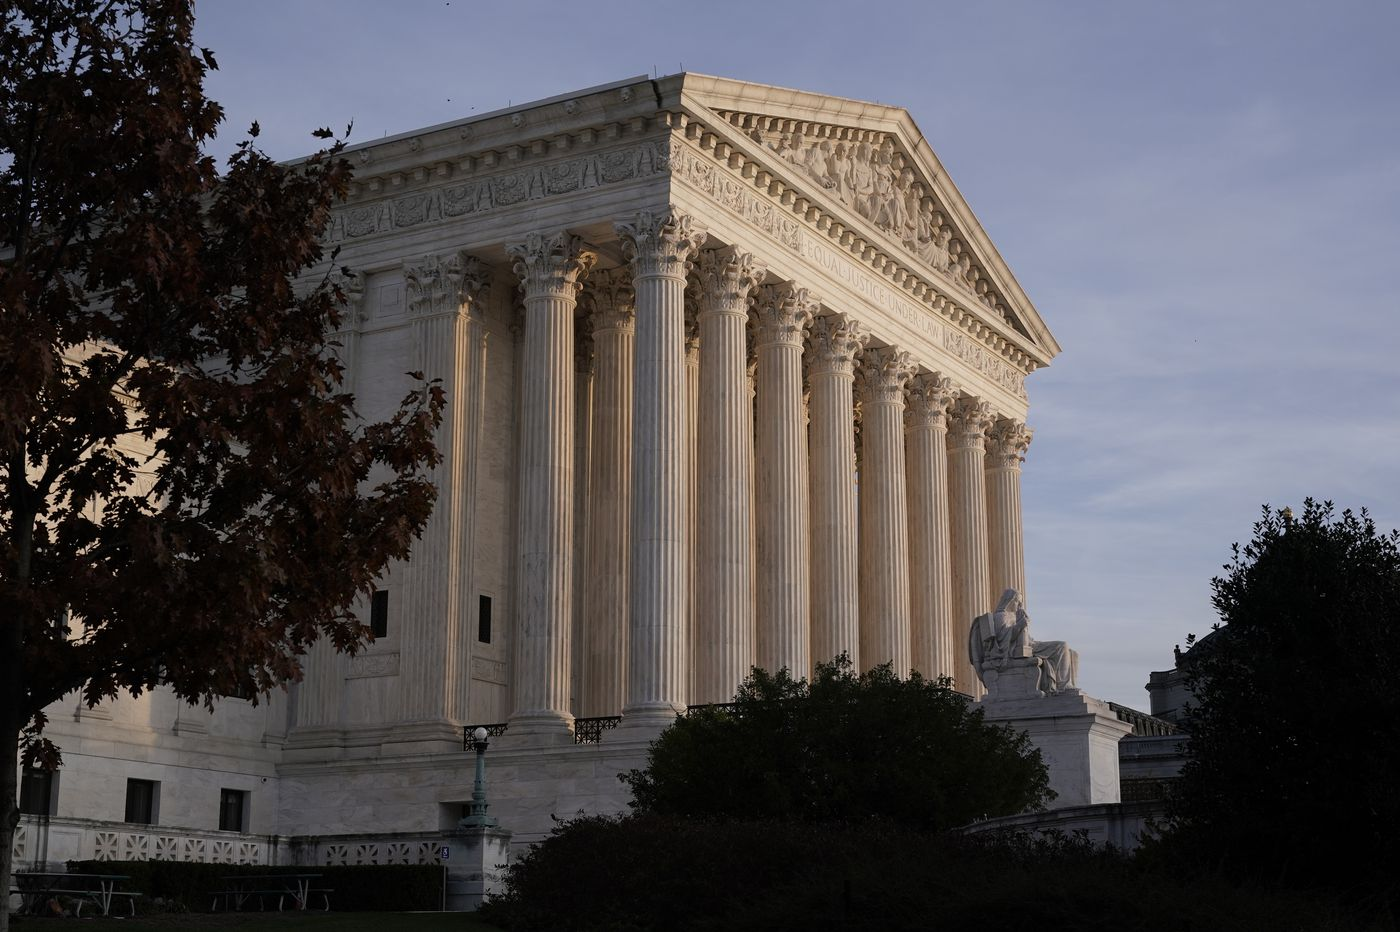 Much at stake as Supreme Court weighs future of 'Obamacare'